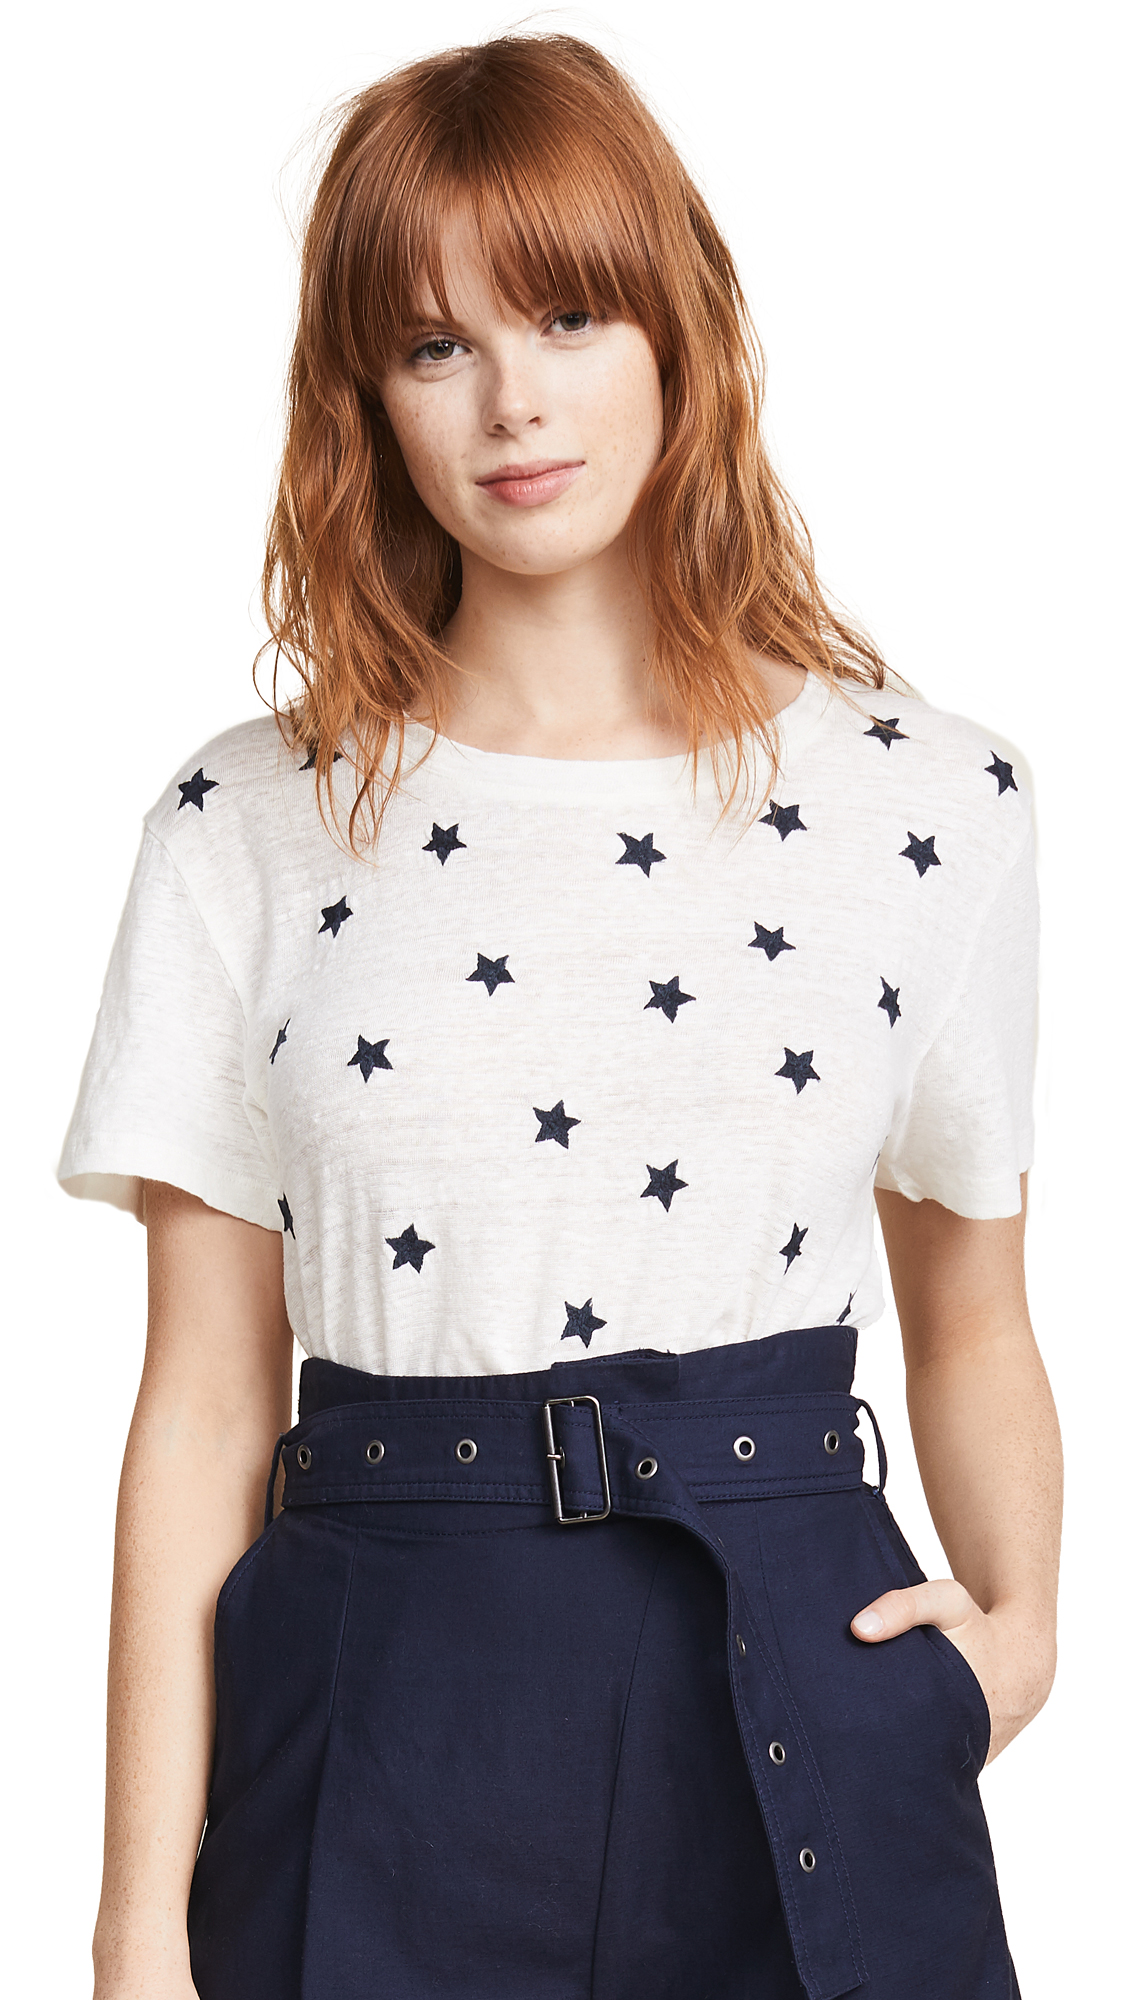 BANNER DAY Starry Night Tee in Bone